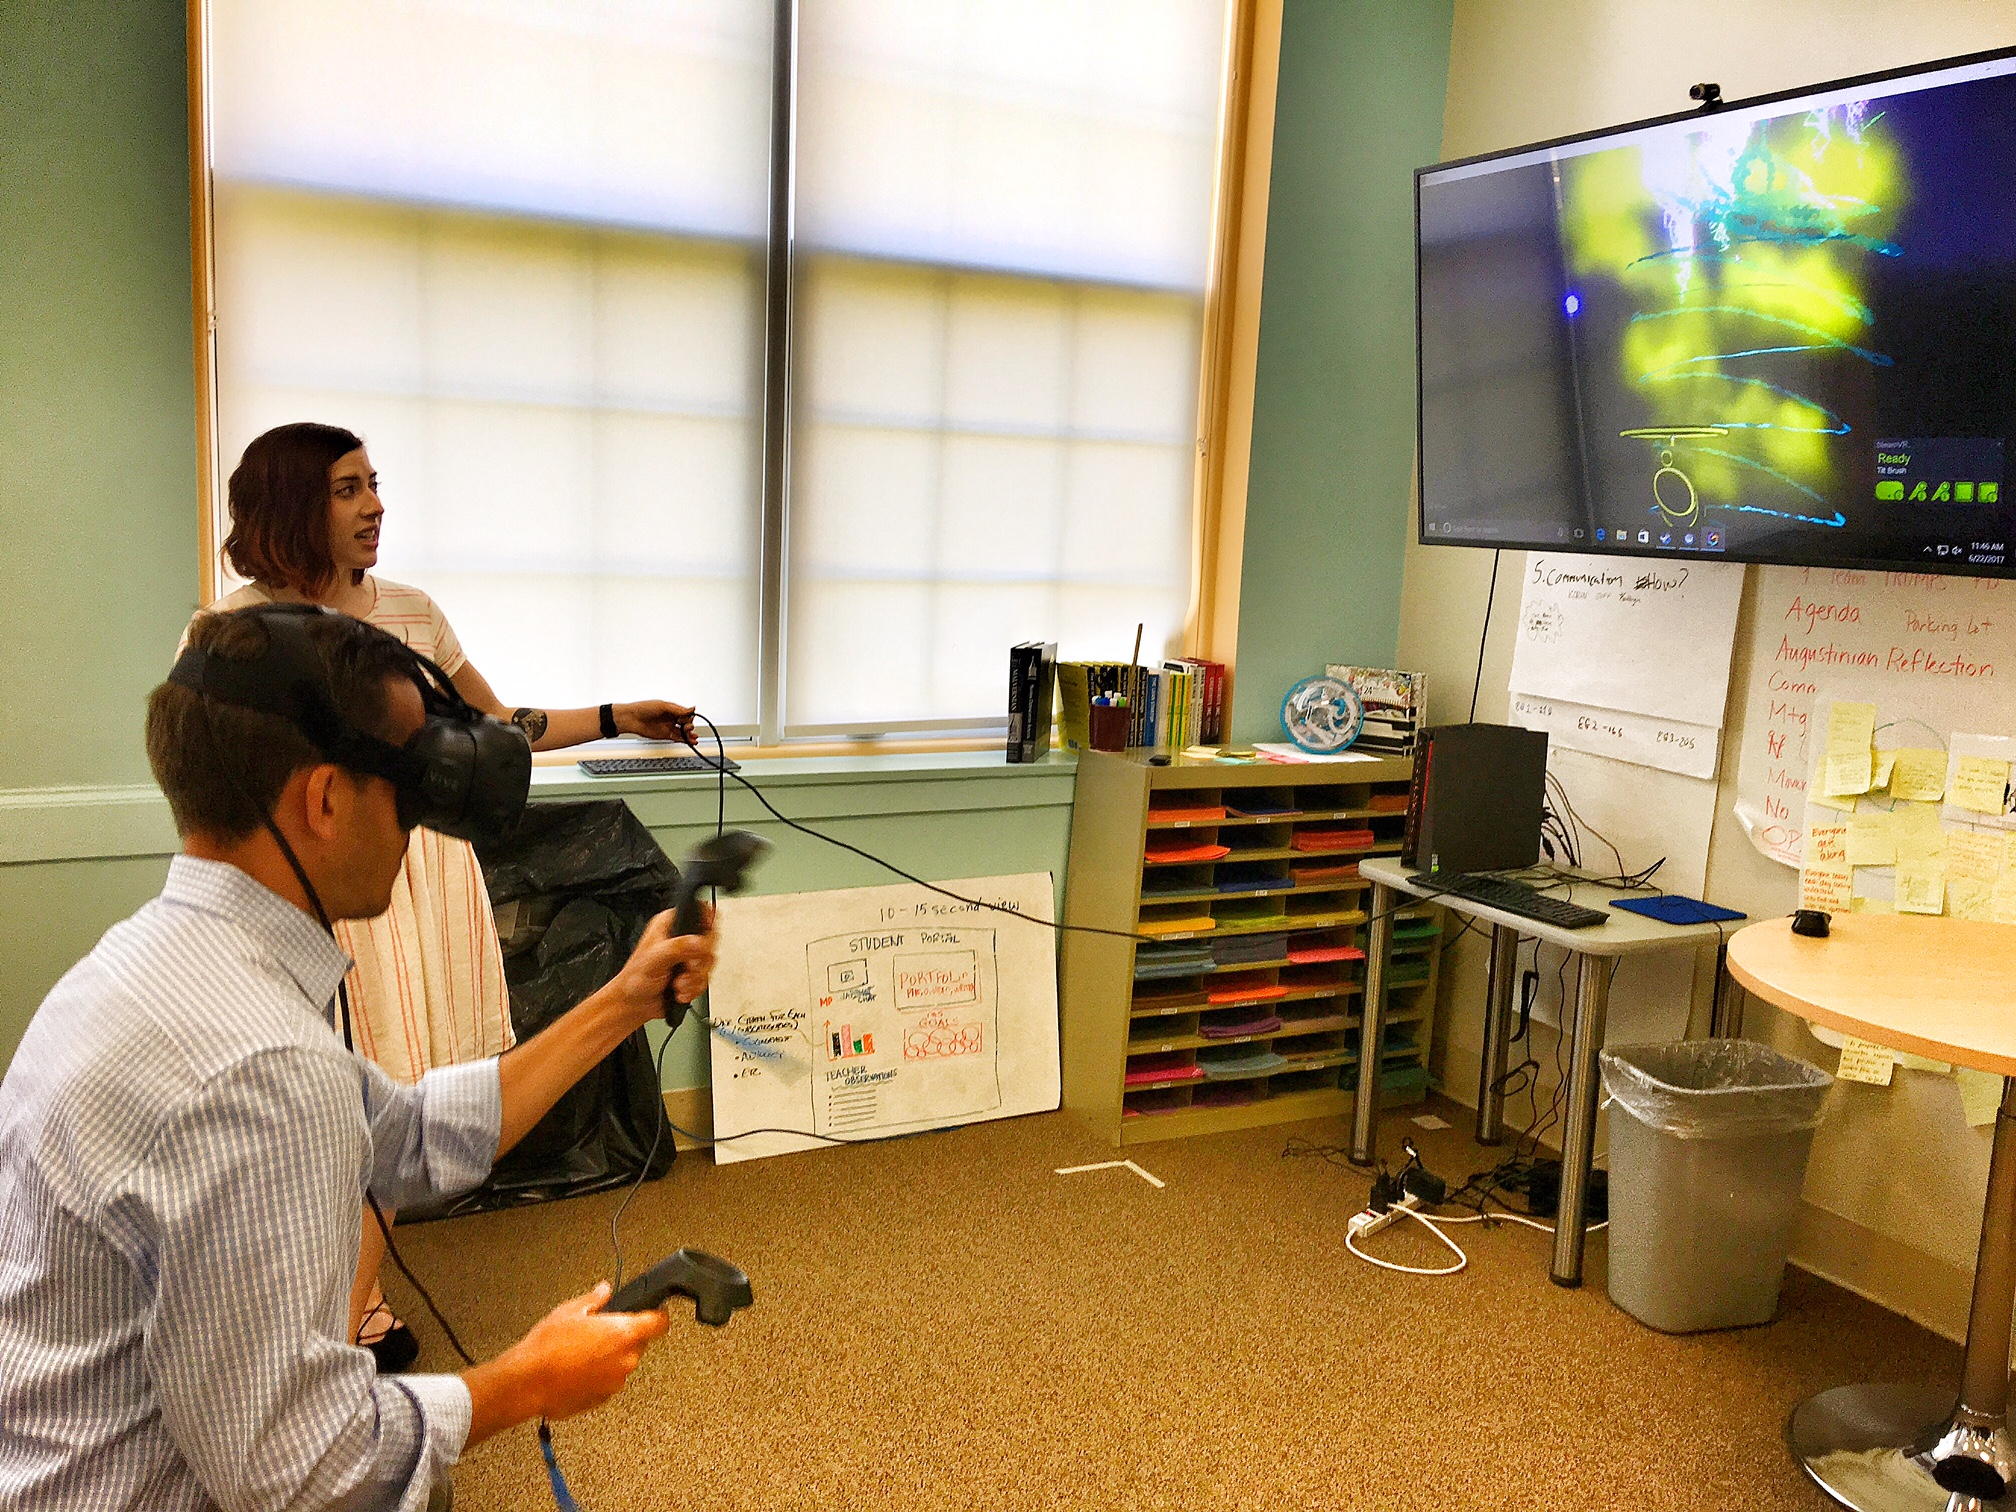 A participant from Signals playtests Google Tilt Brush, a virtual reality prototyping tool available through the HTC Vive.